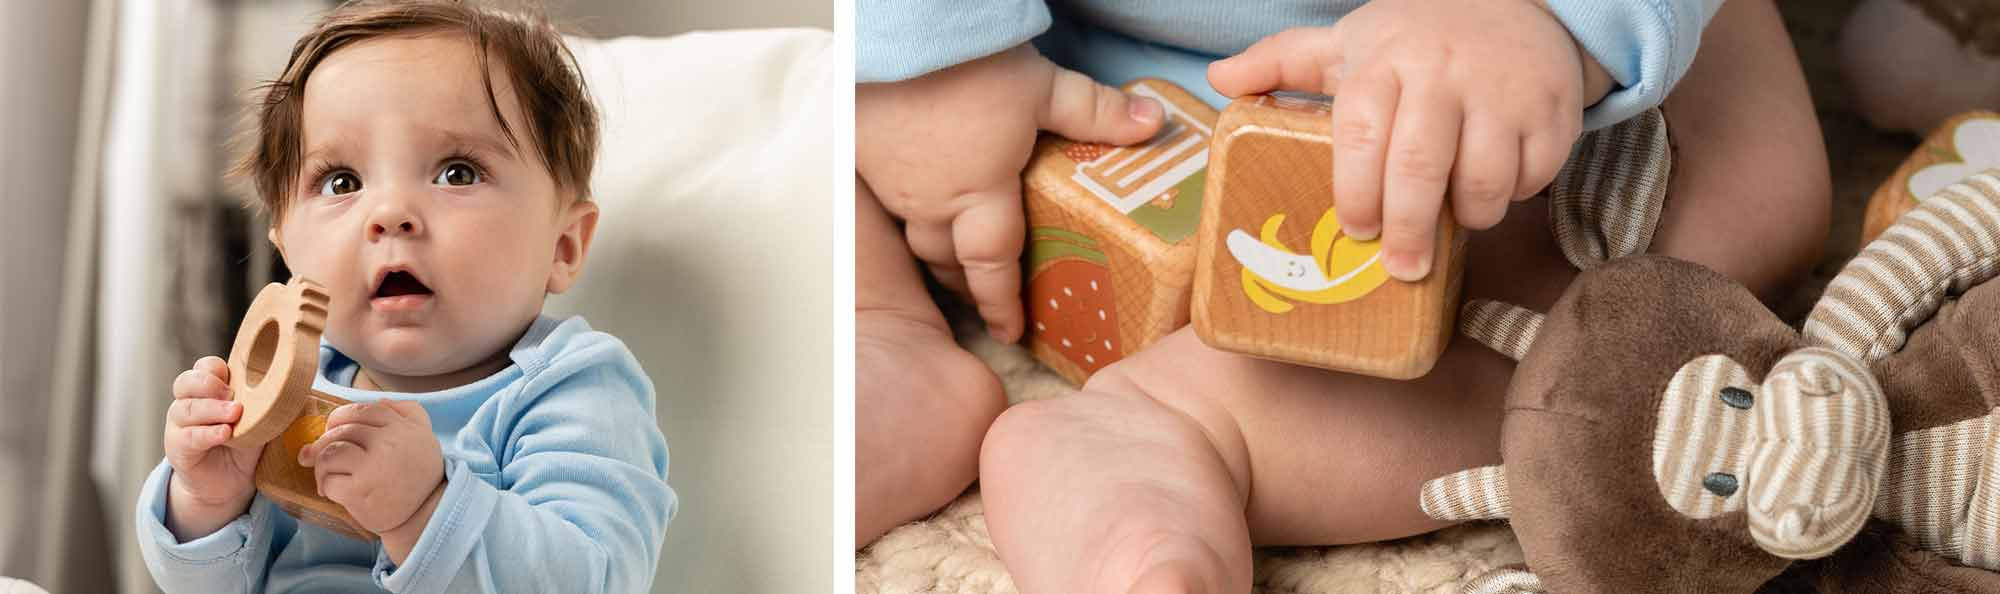 Picture of a baby playing with wooden blocks and teething toys